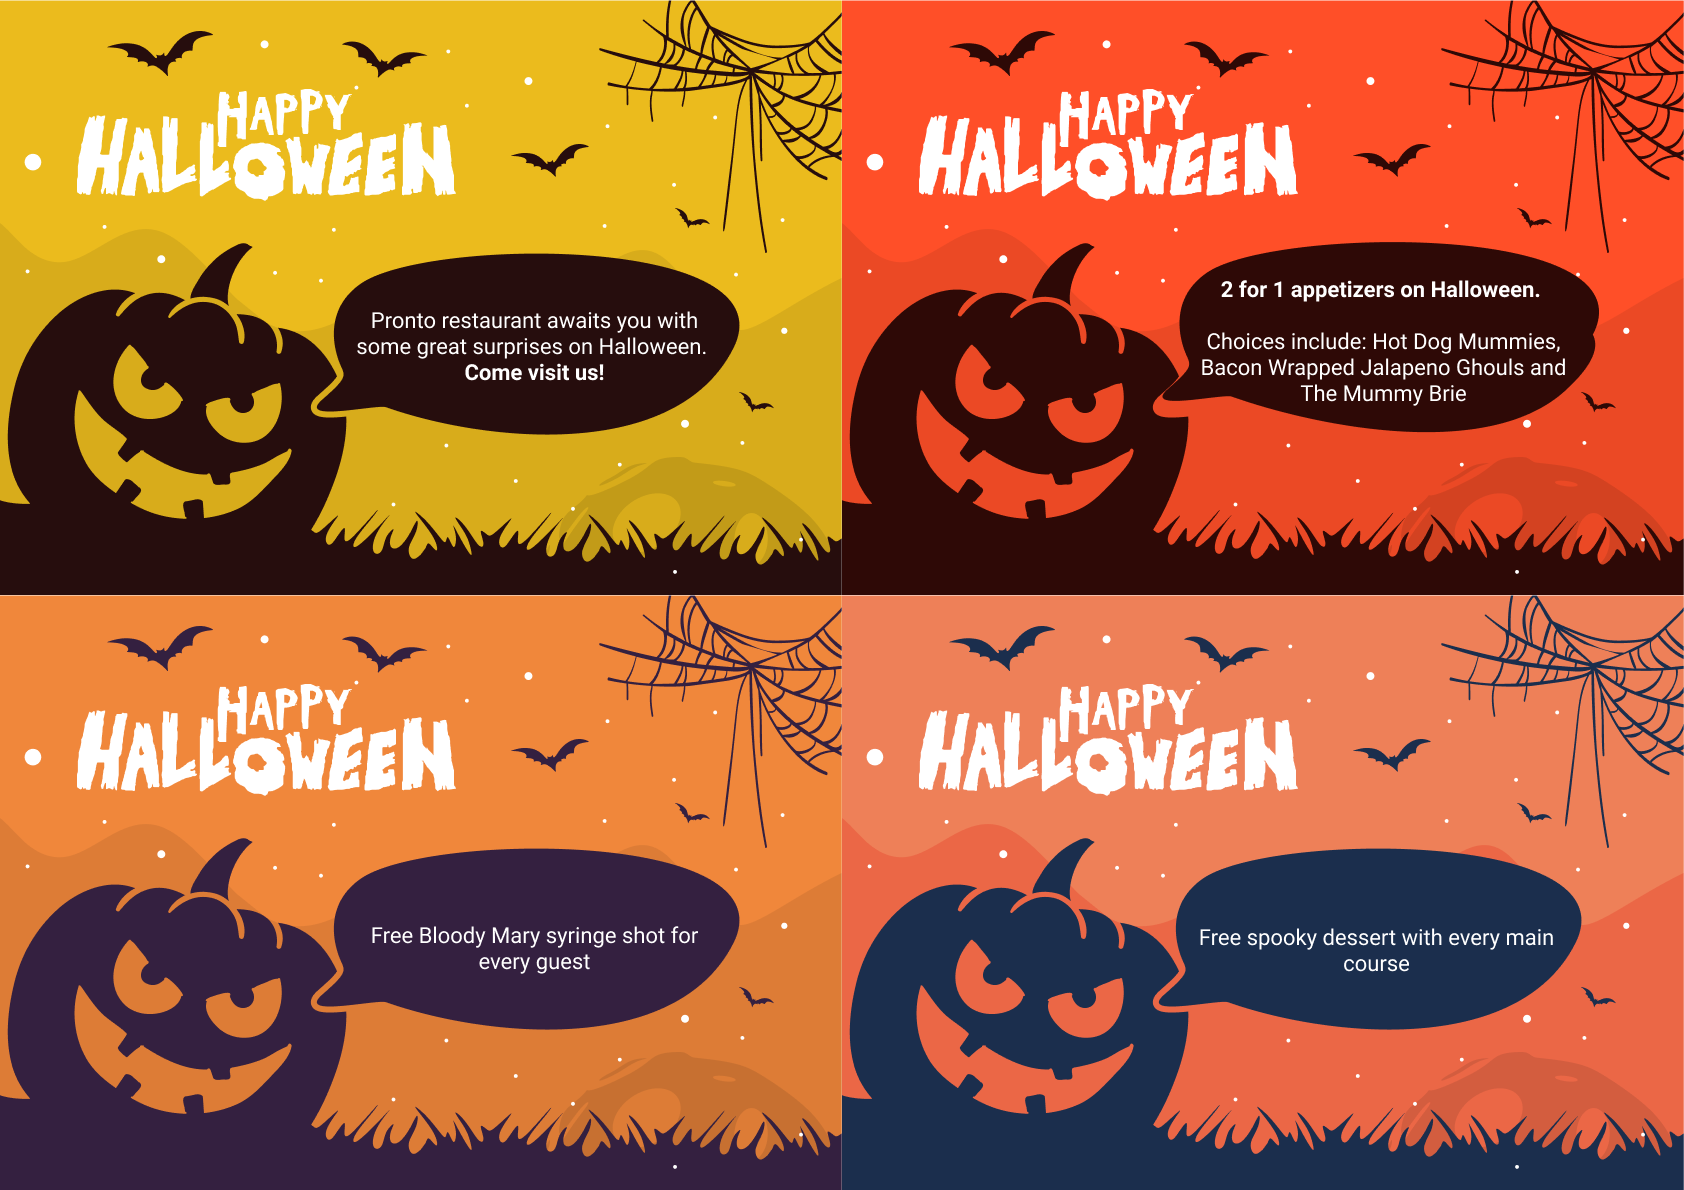 Halloween Restaurant Promotions You Should Try This Year  GloriaFood